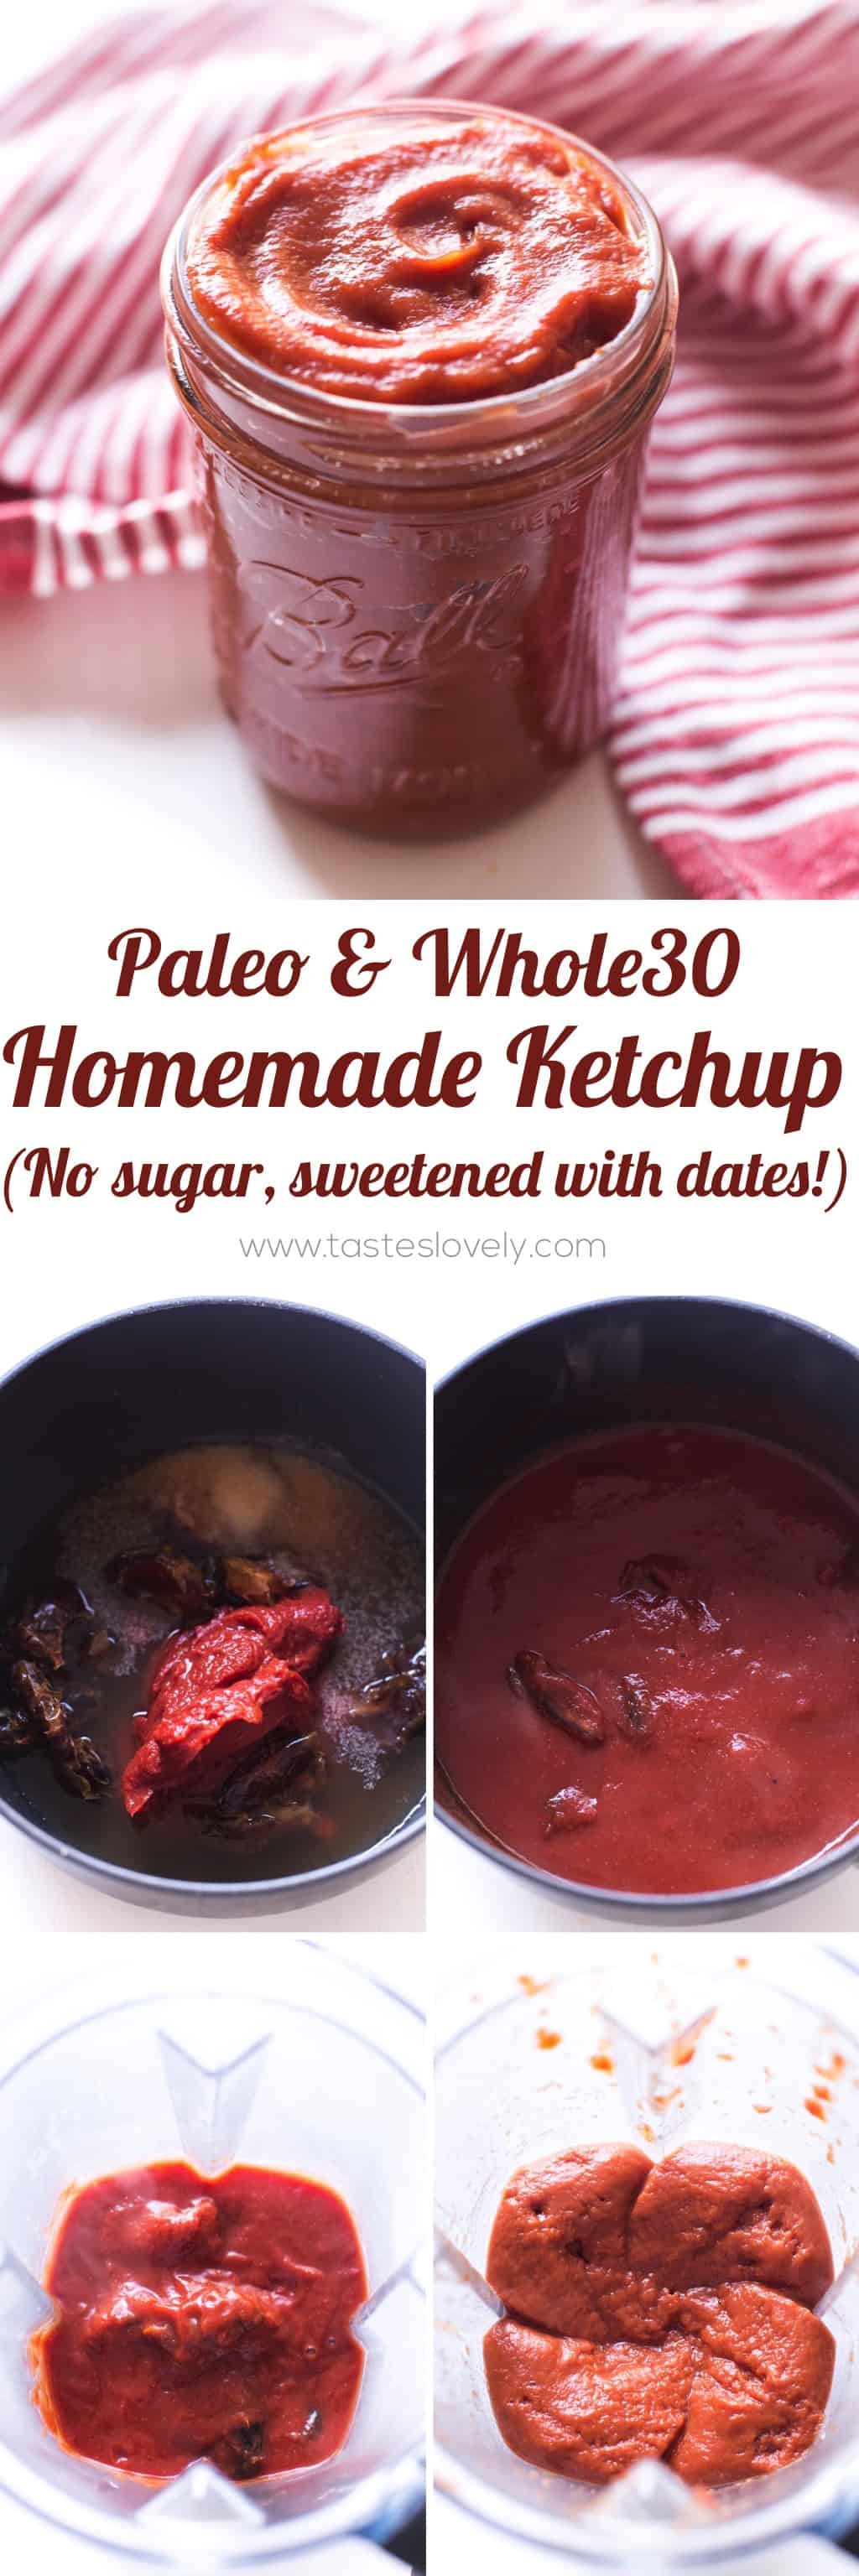 Easy Whole30 and Paleo Ketchup – a homemade Tessemae's ketchup copycat recipe (gluten free, grain free, dairy free, sugar free, vegan, clean eating)